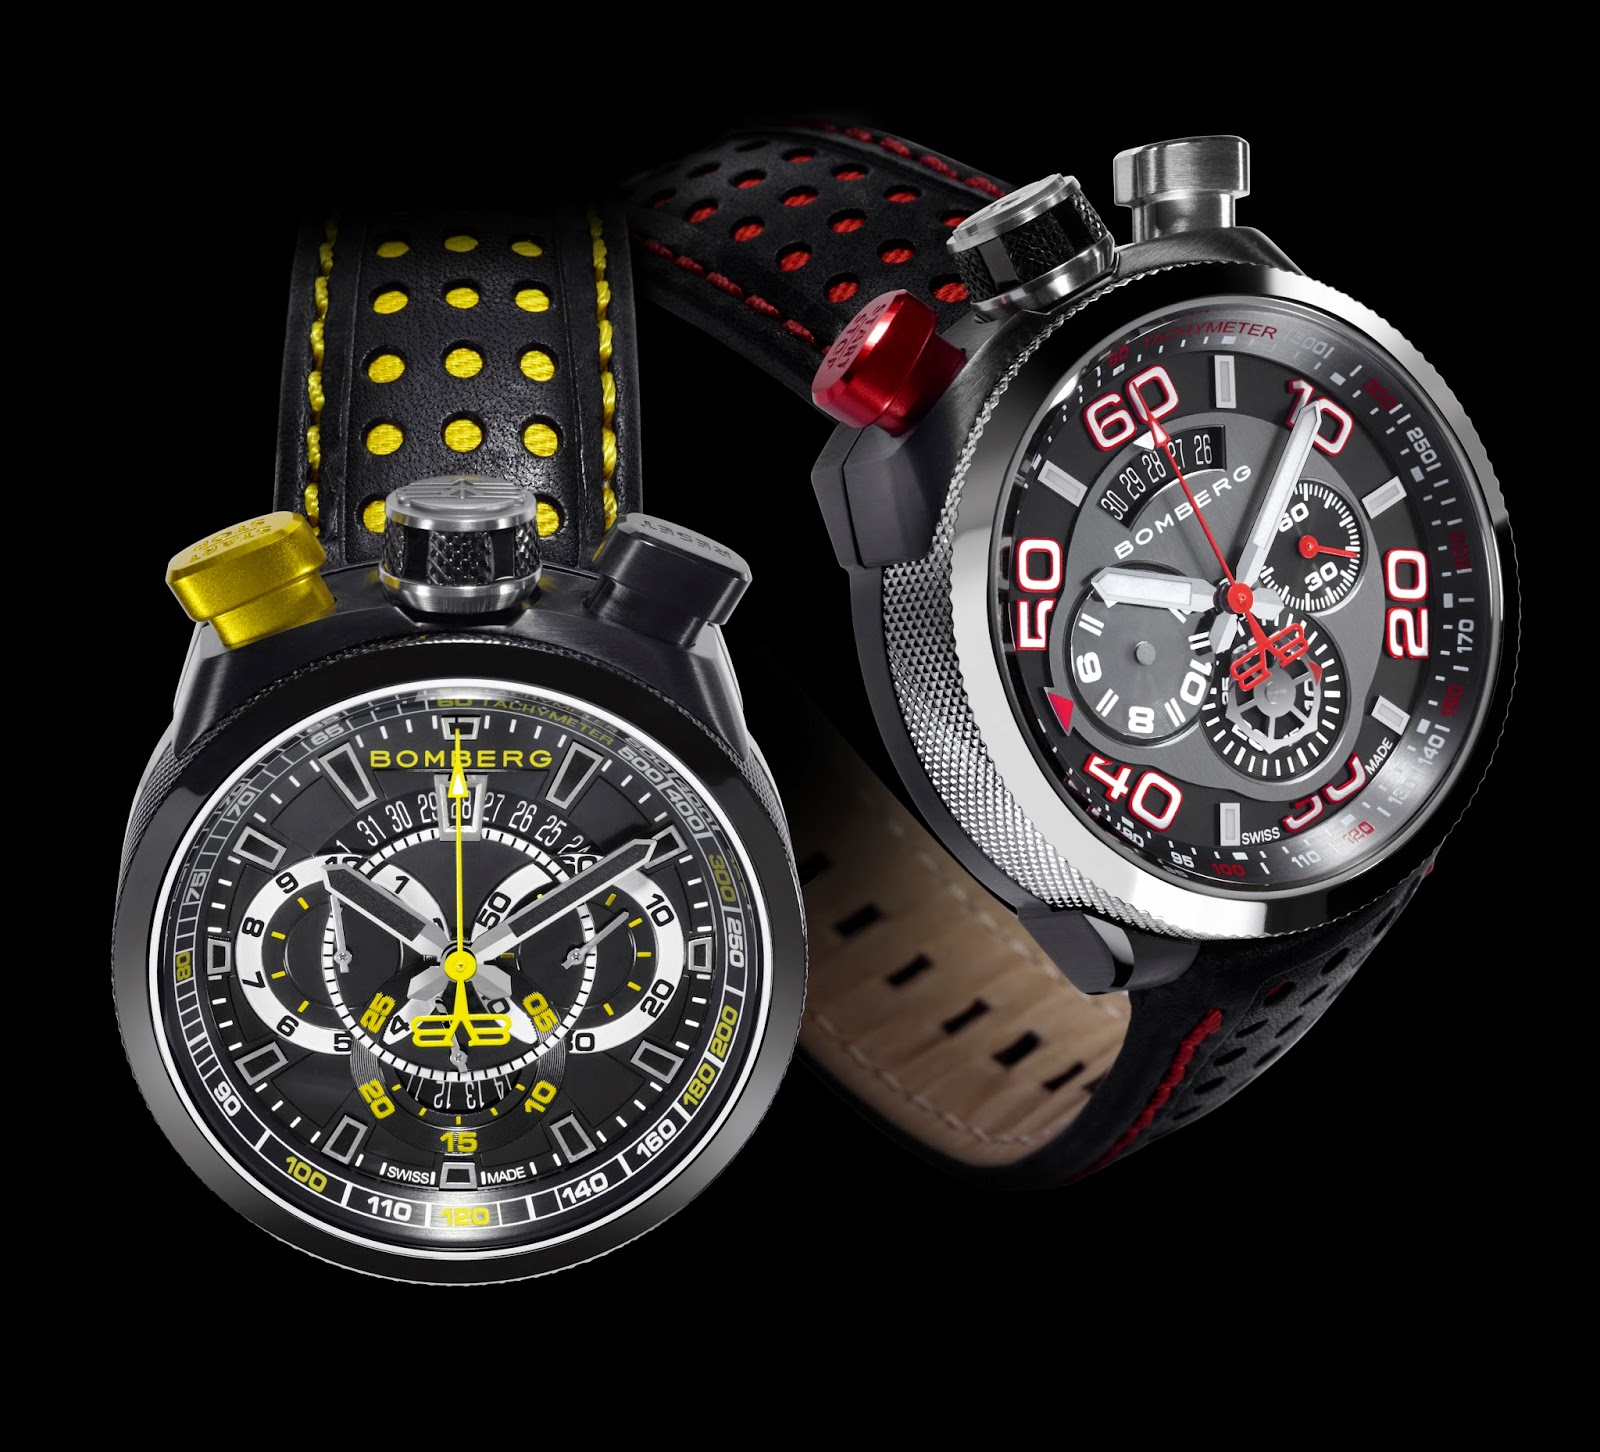 bomberg_relojes_compro